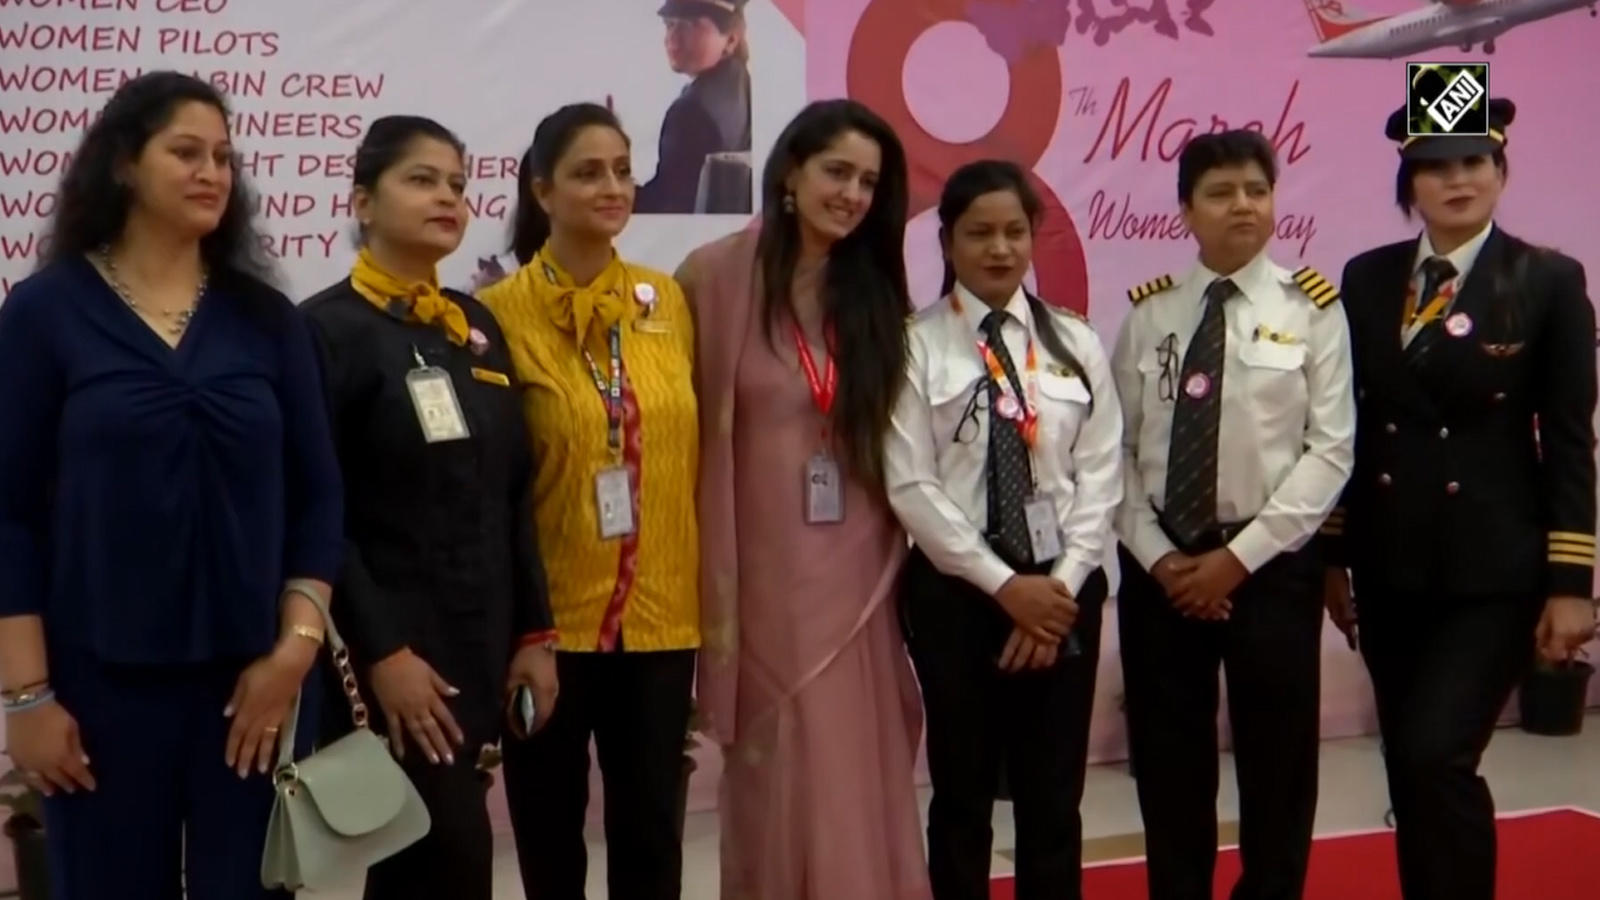 alliance-air-operates-flight-with-all-women-crew-on-international-womens-day